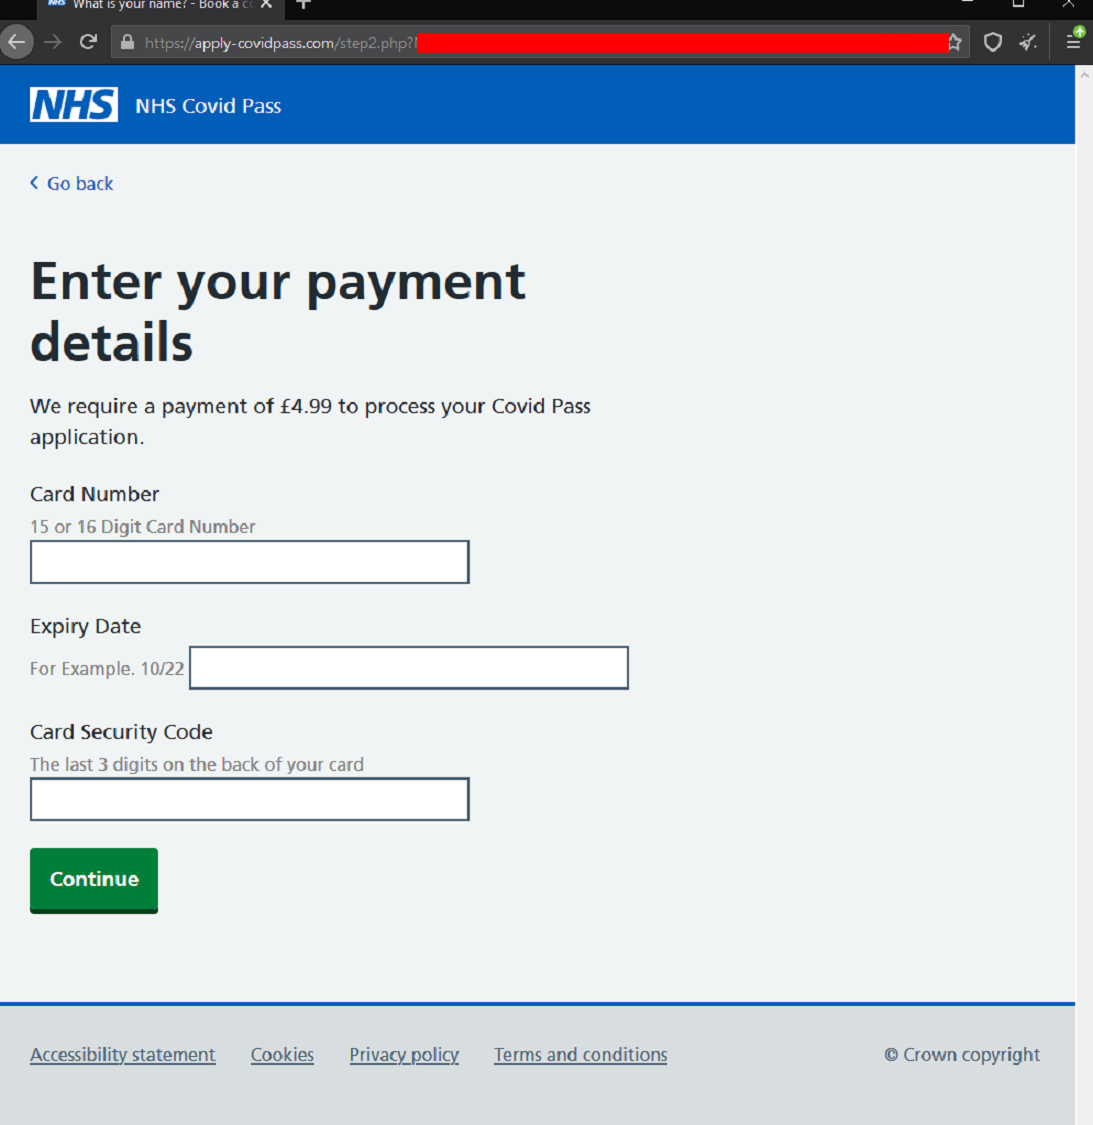 Screenshot of a webpage used as part of a scam targeting credit card details by posing as the NHS asking for payment to process a Covid Pass application